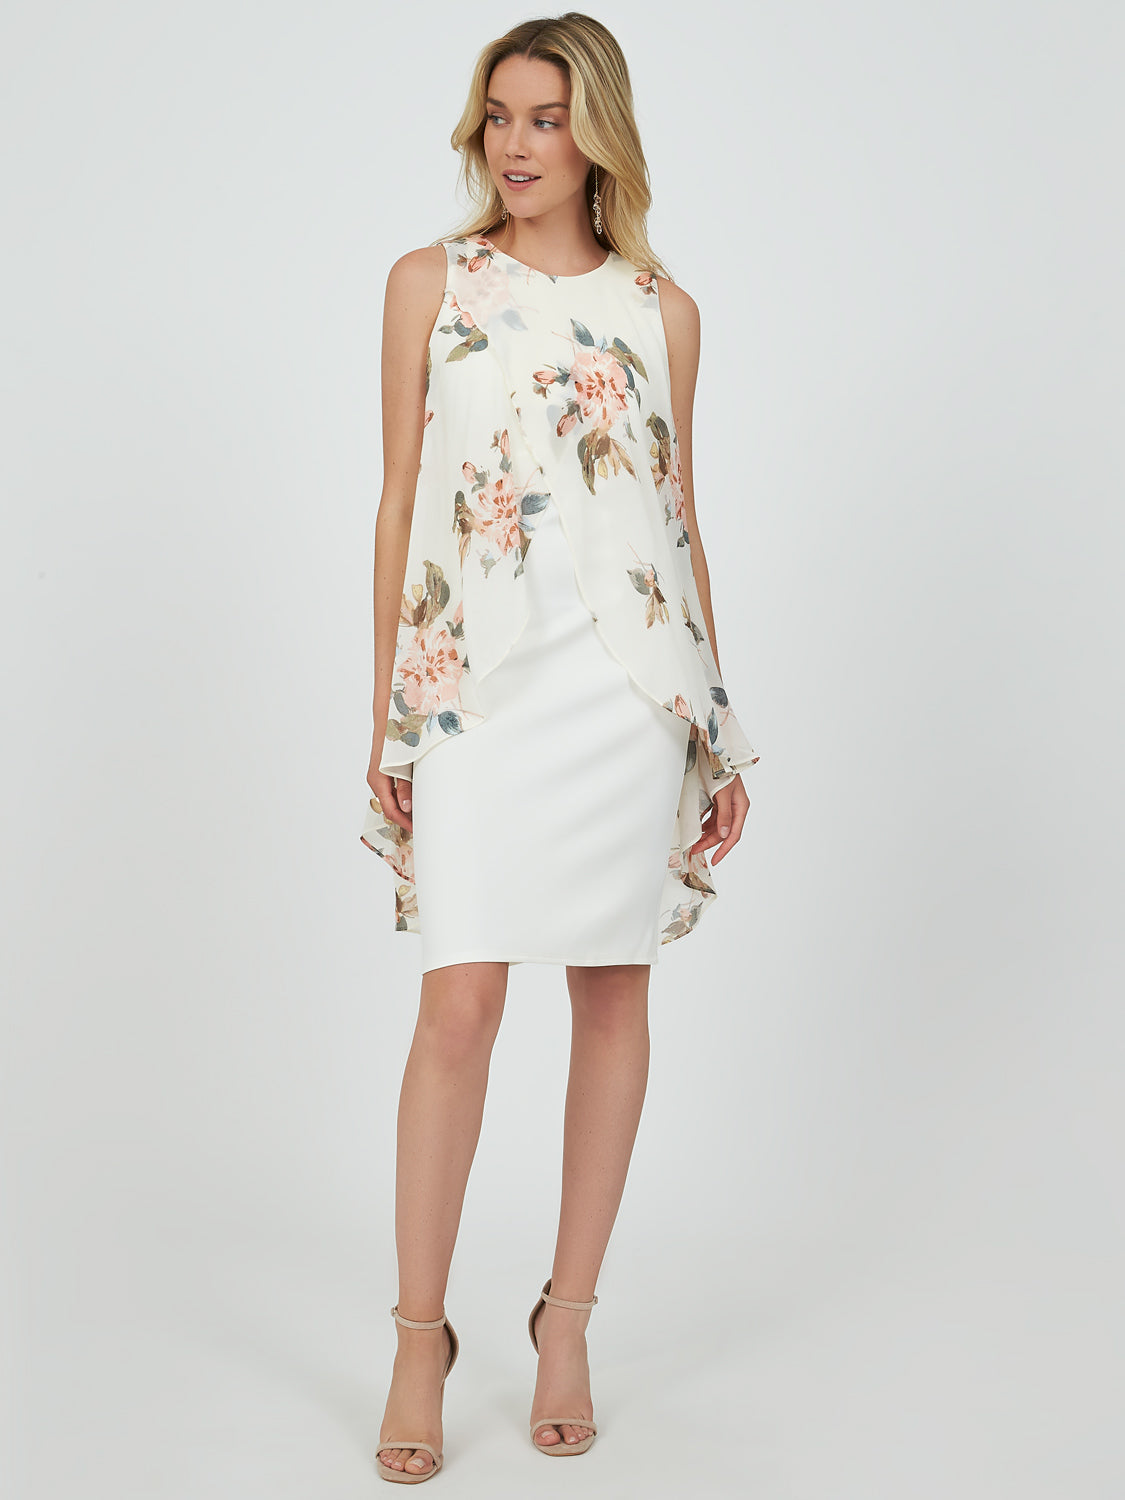 Floral Chiffon Overlay Mini Dress